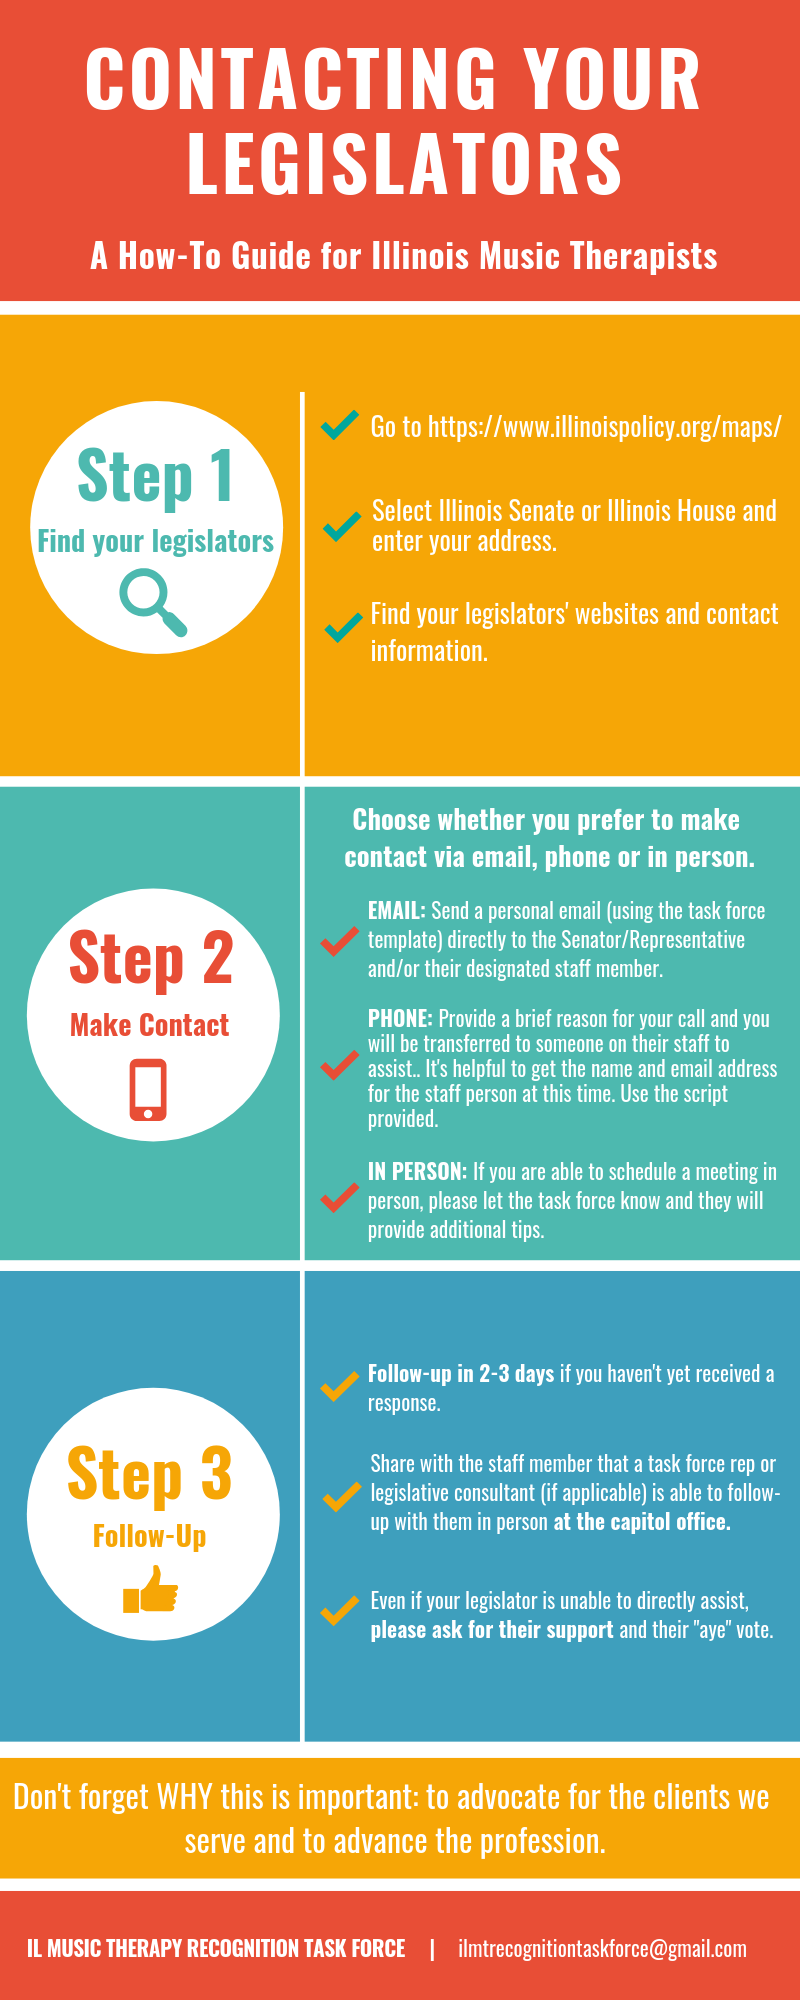 An image with information on contacting your legislators.